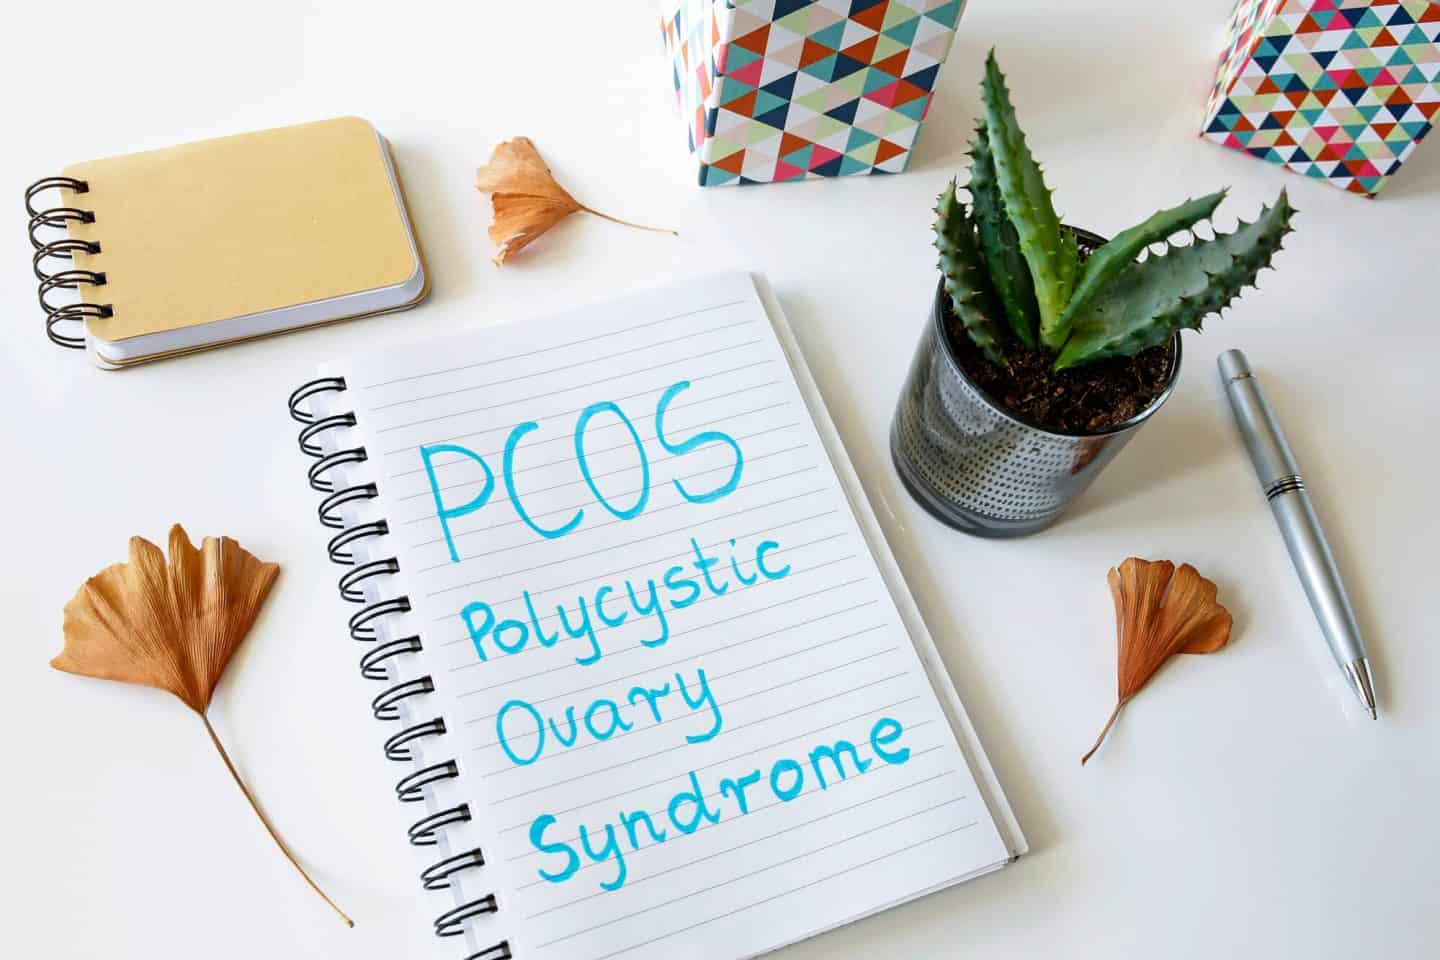 Why Do PCOS Make it Hard for You to Conceive?